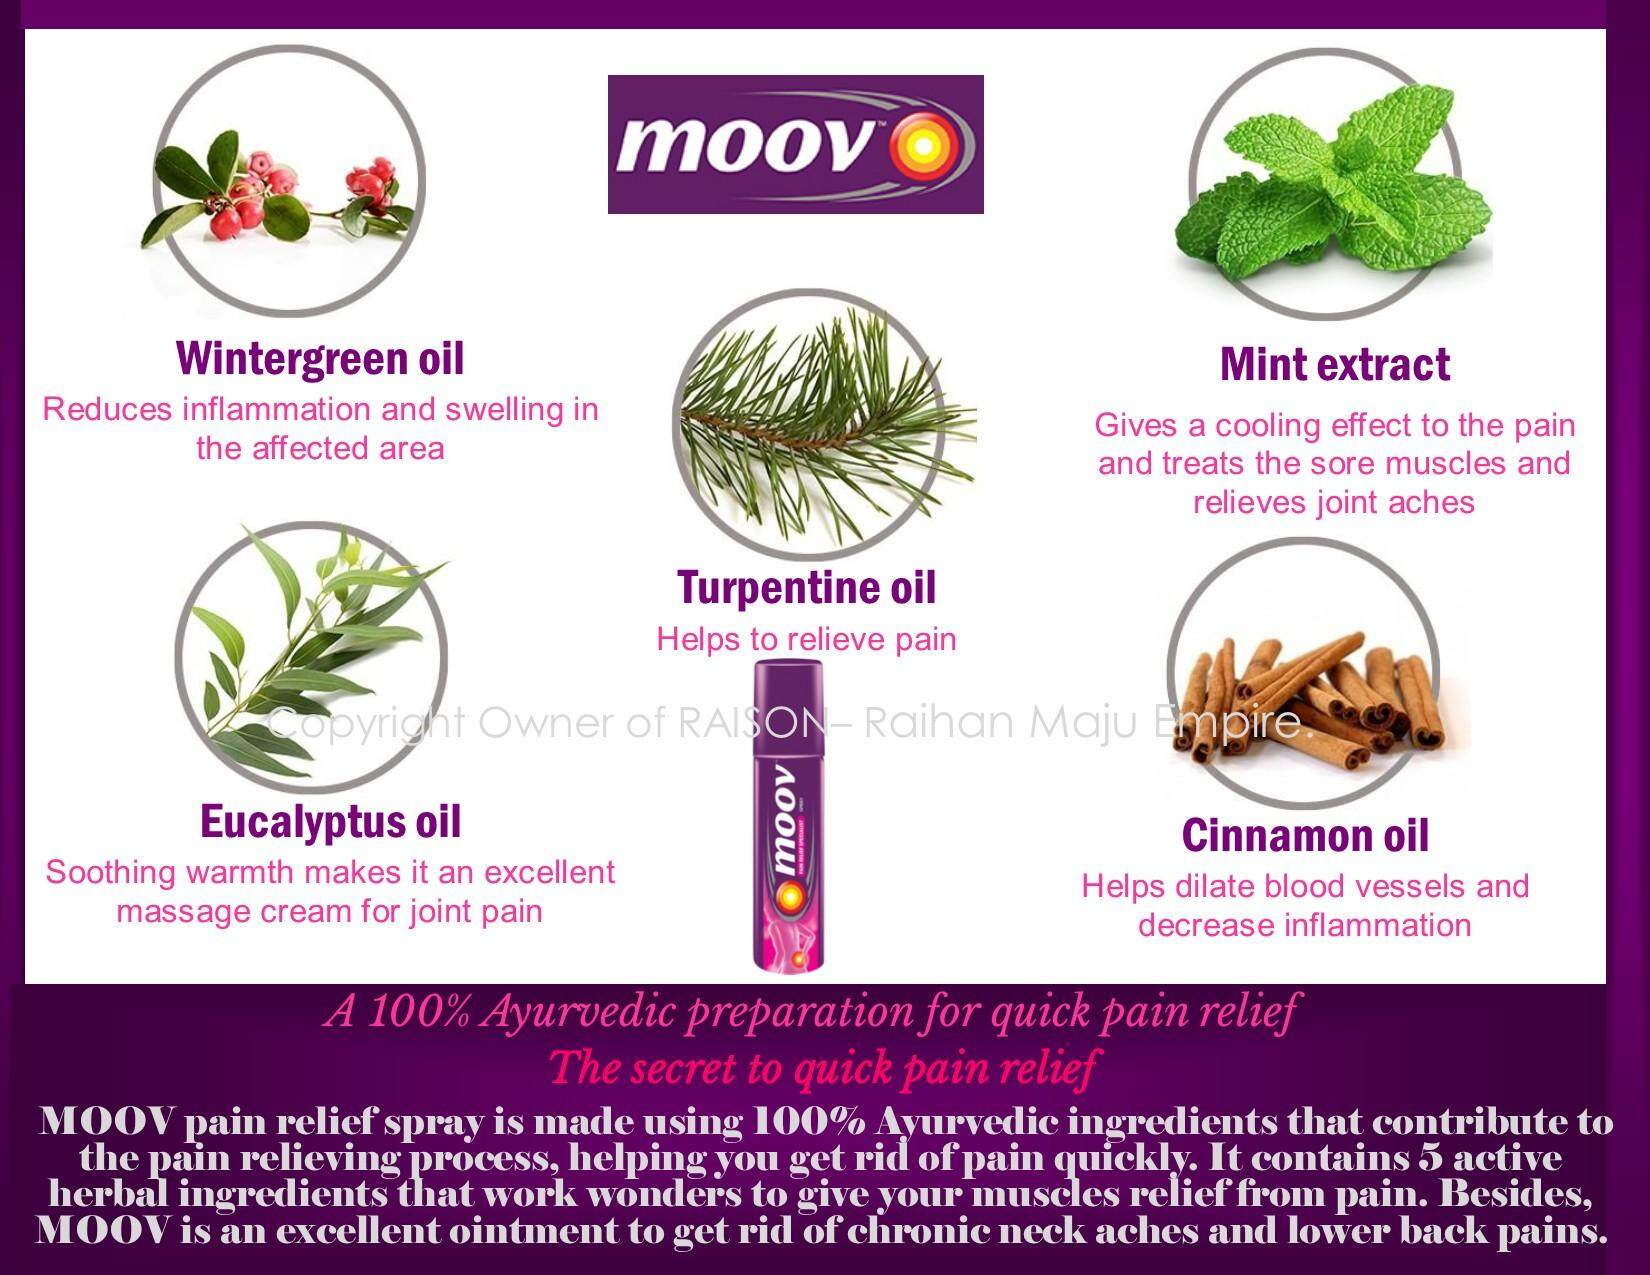 MOOV PAIN RELIEF SPECIALIST SPRAY 80gm